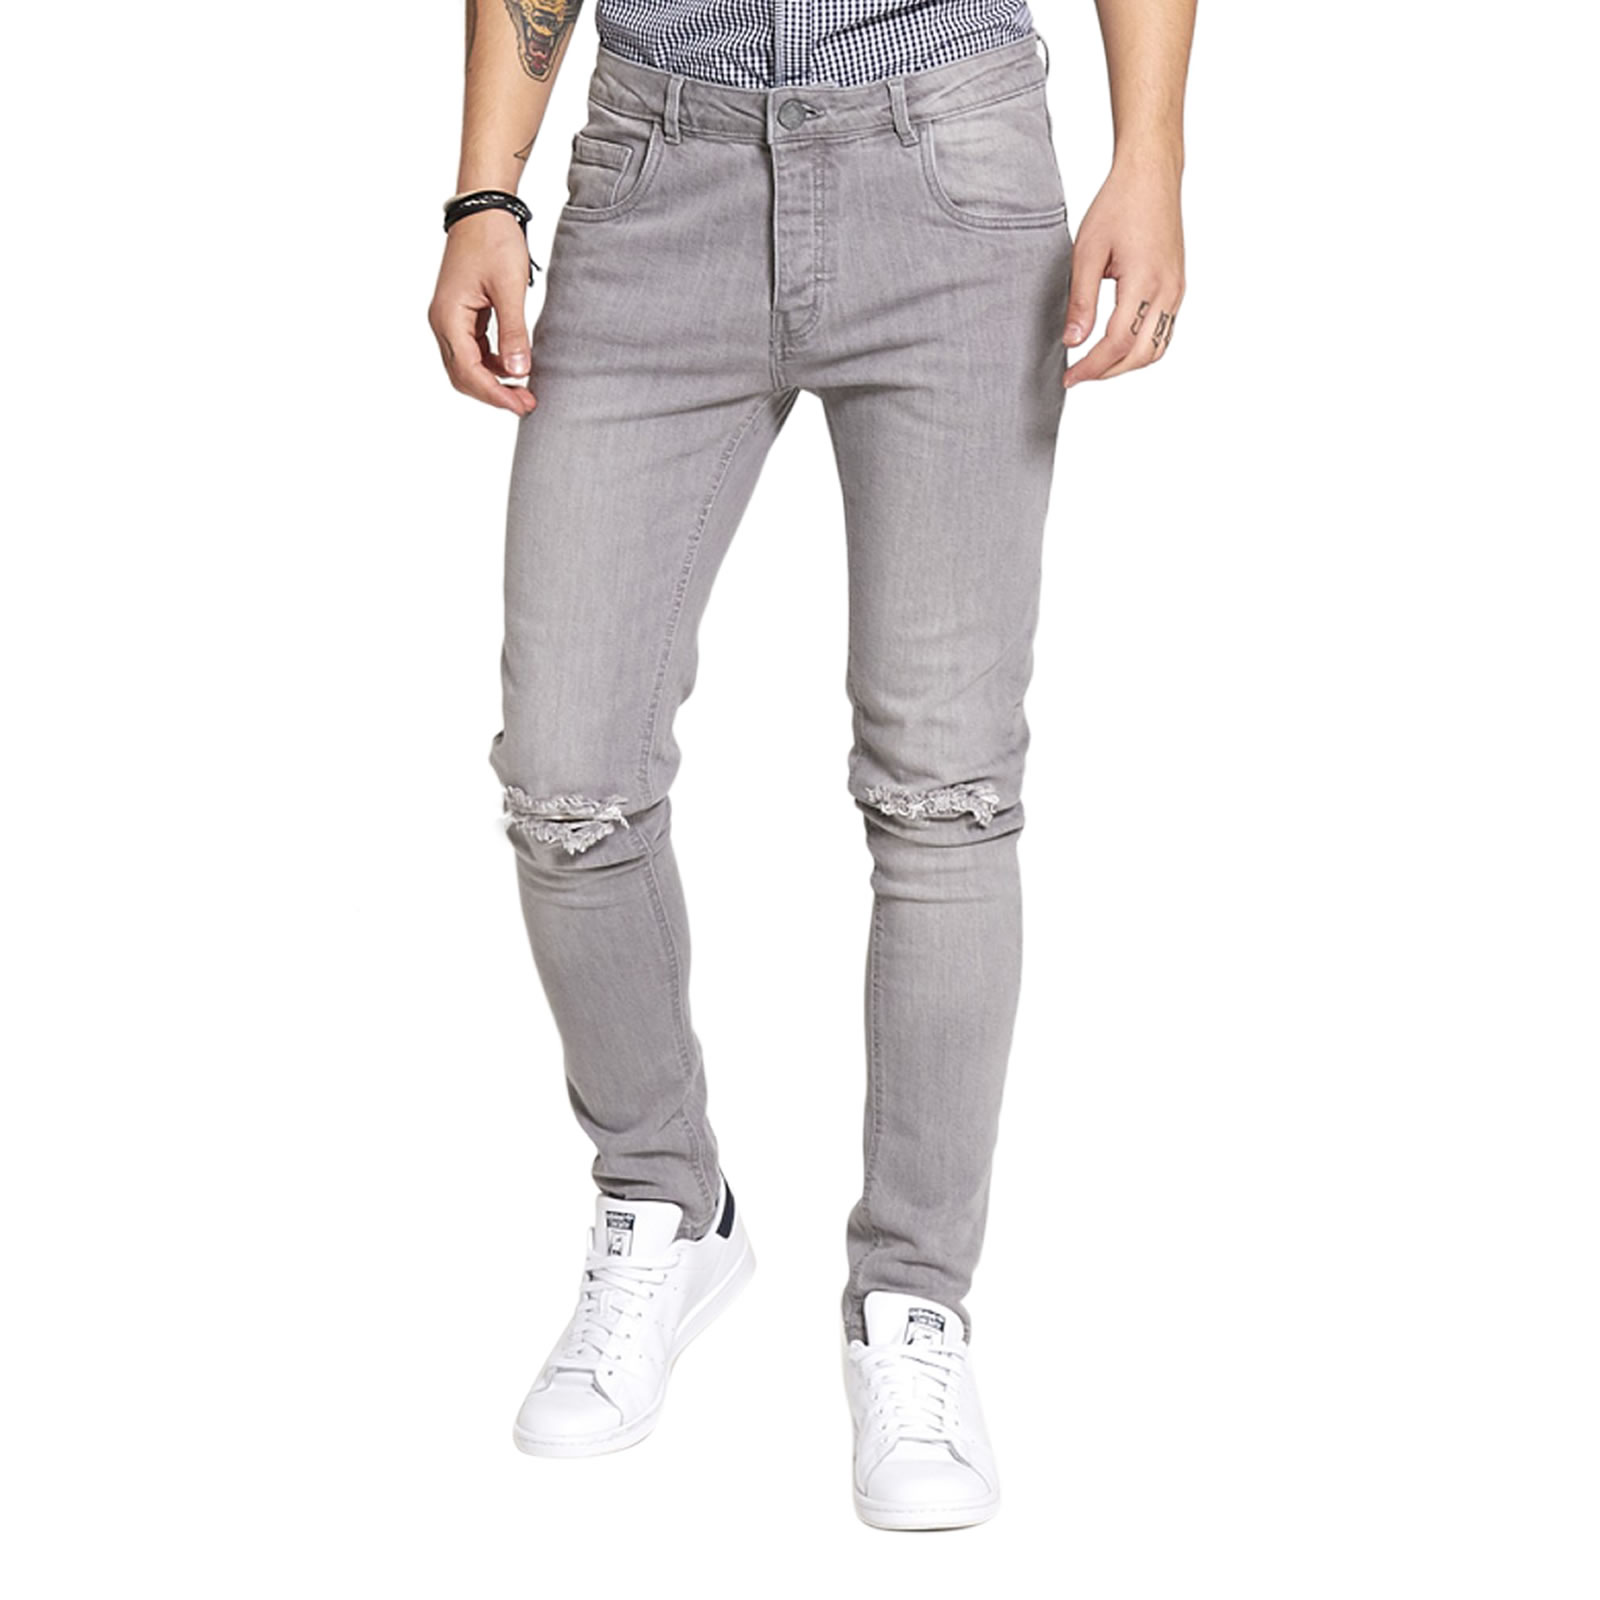 Skinny Jeans - Grey Brave Soul Cheap Price Low Shipping Fee Sale Online Shop View For Sale XIWMuL2